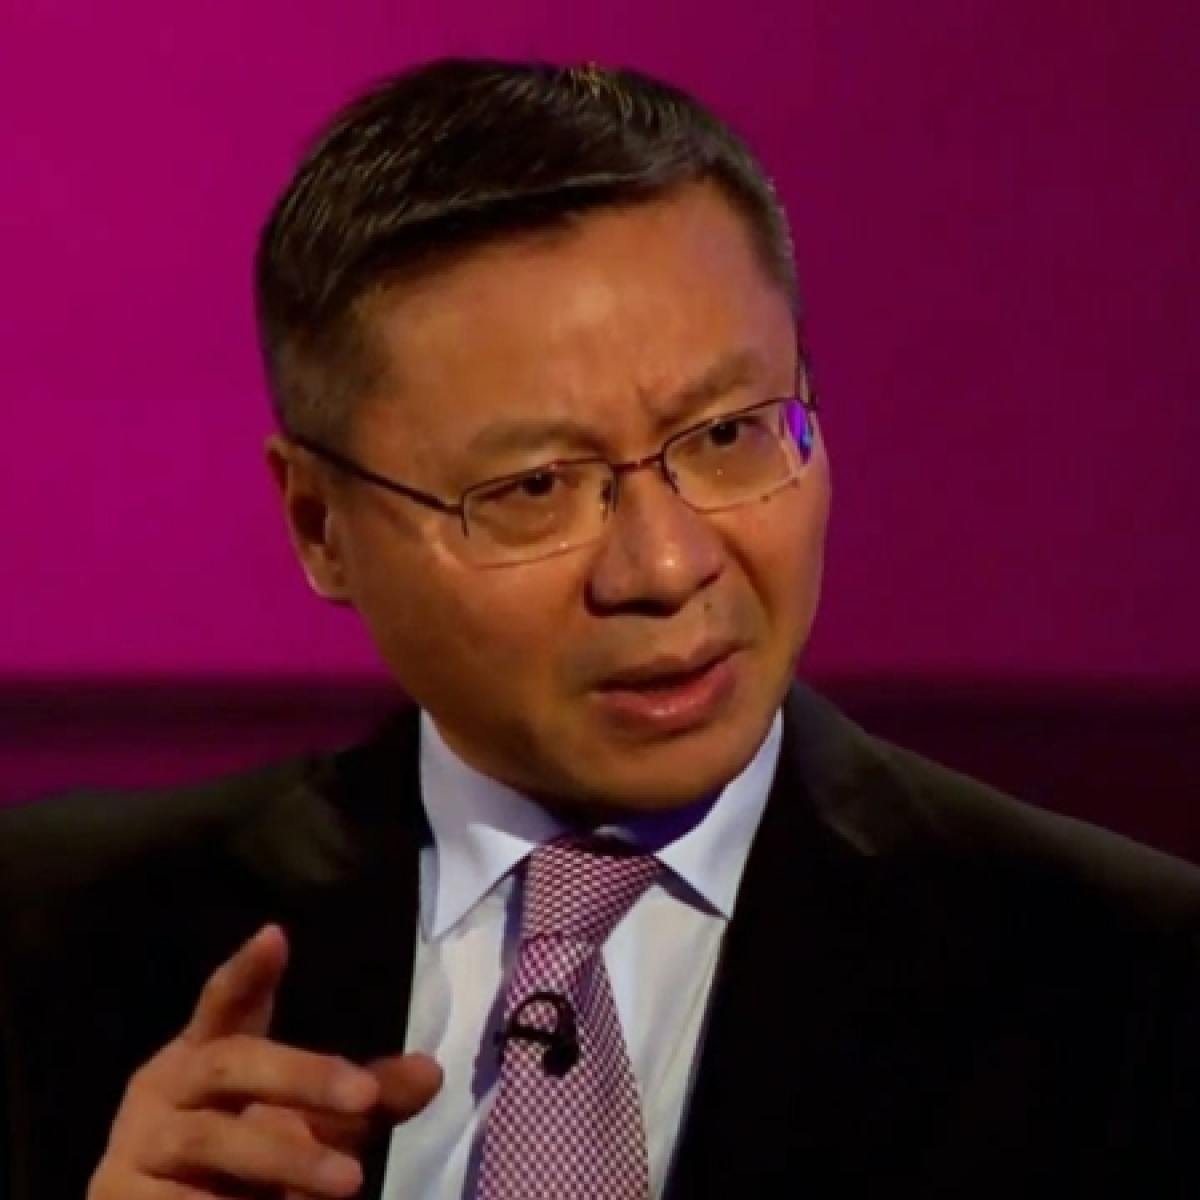 China open to renegotiate terms of BRI: Chinese political commentator